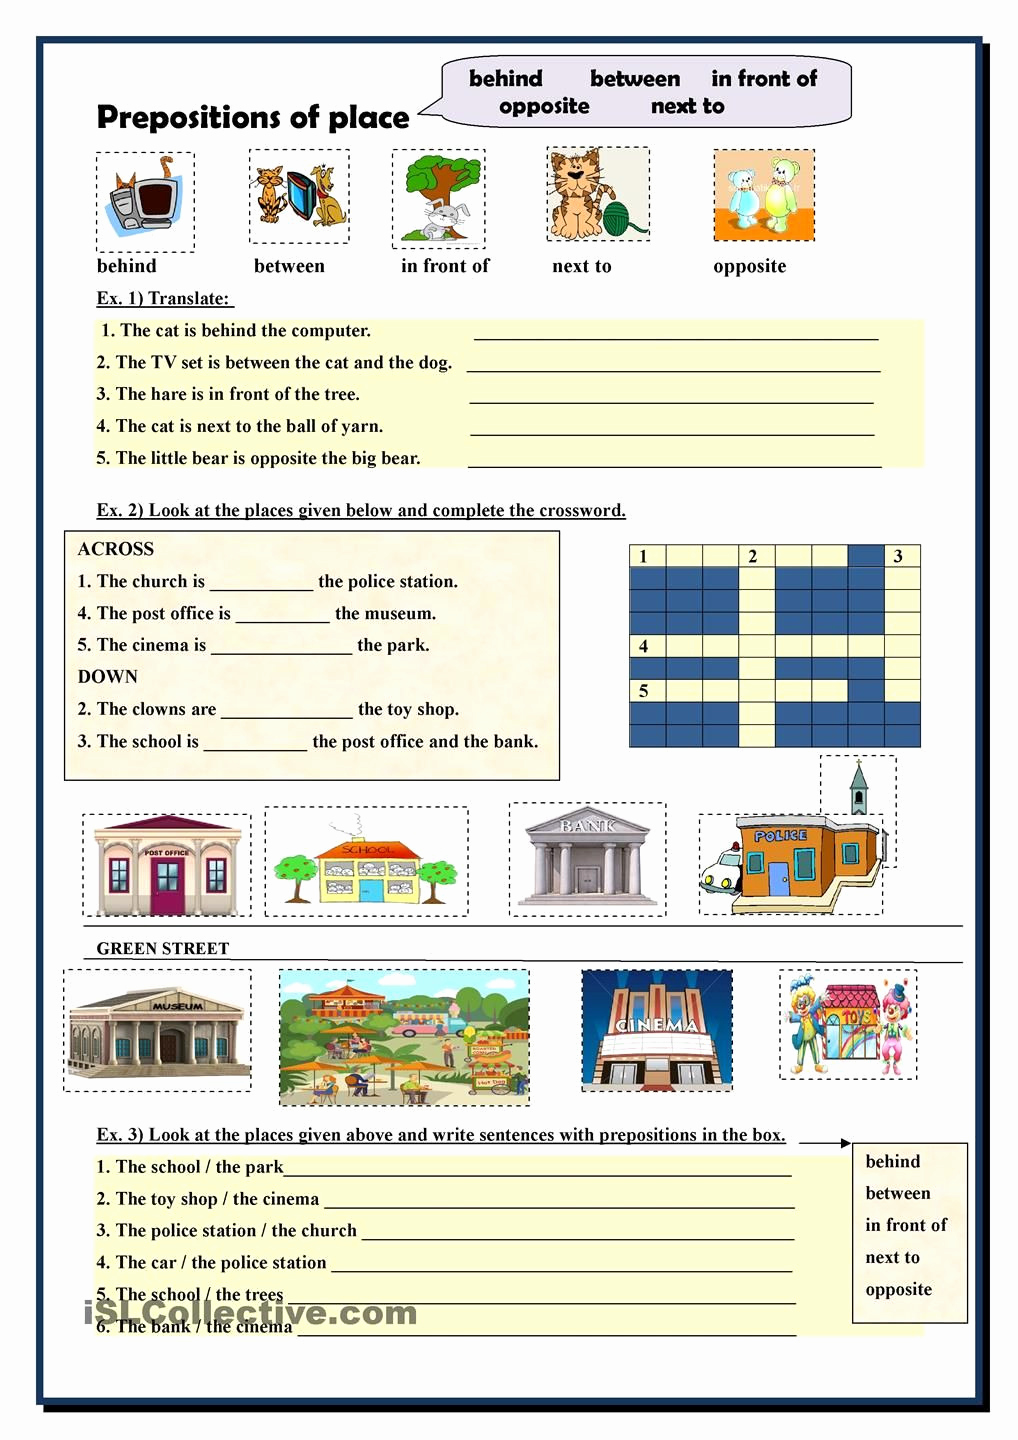 Prepositions Worksheets Middle School Beautiful Preposition Worksheets for Middle School